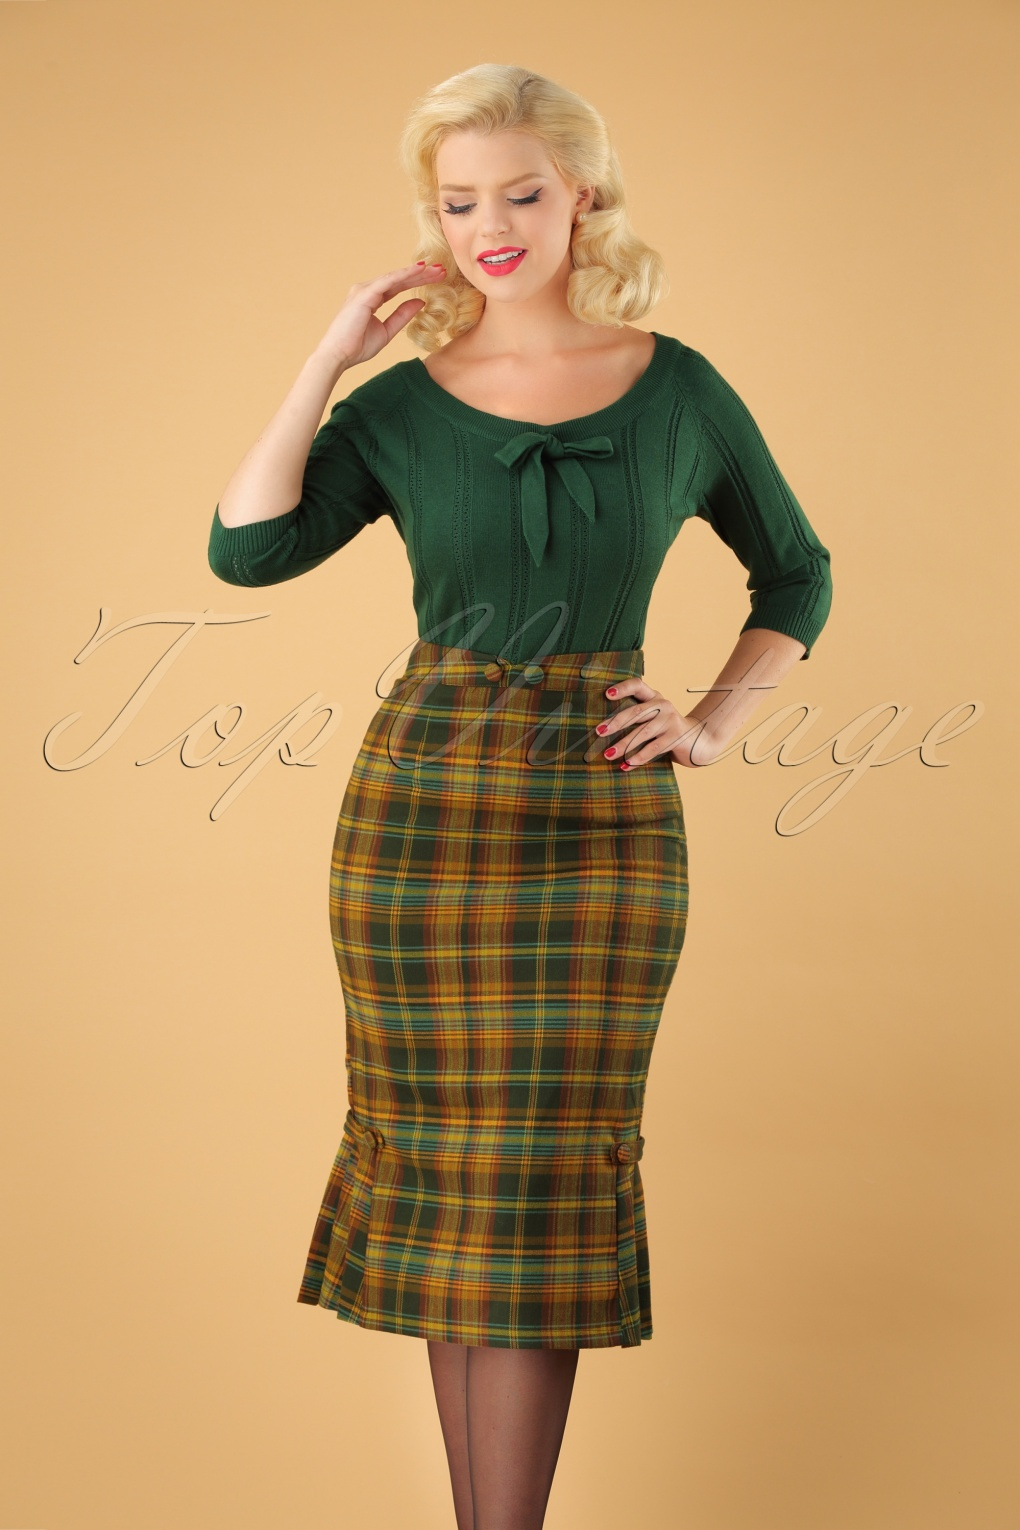 Retro Skirts: Vintage, Pencil, Circle, & Plus Sizes 40s Stella Pencil Skirt in Green Tartan £35.56 AT vintagedancer.com